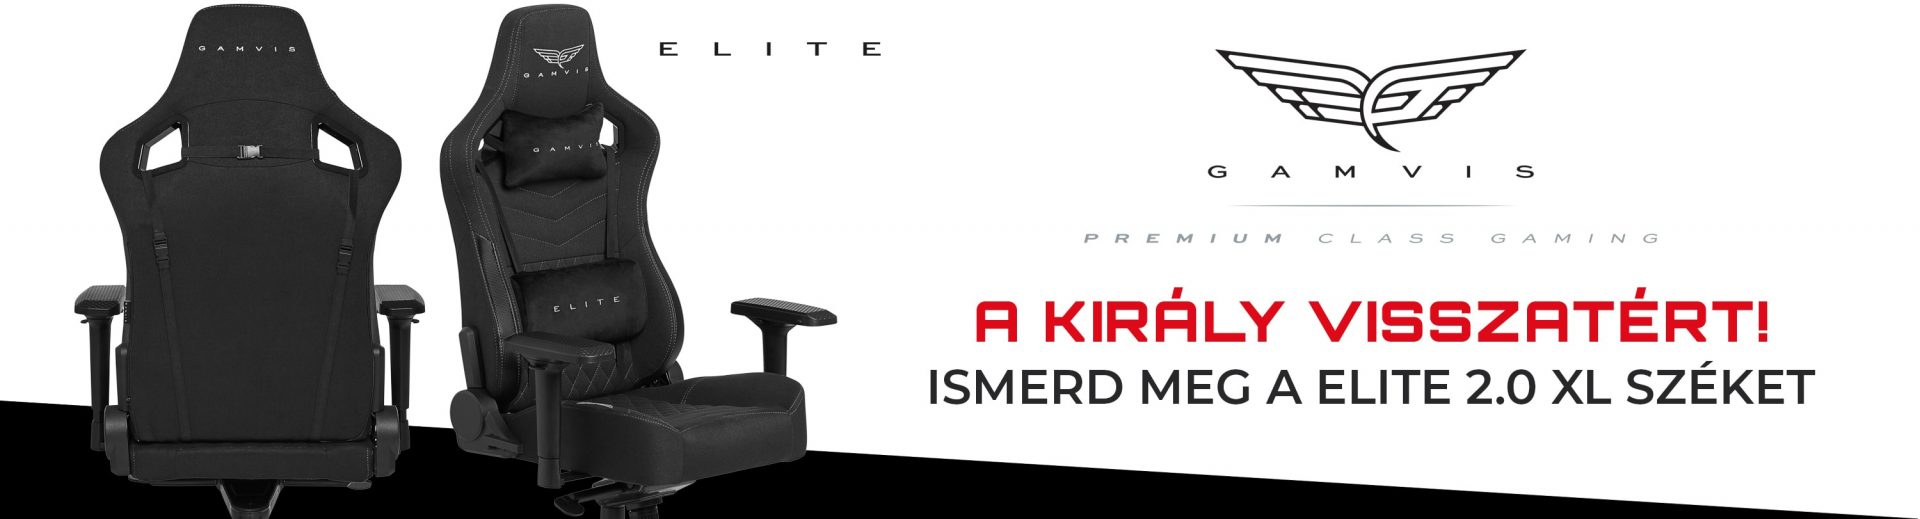 THE-KING-IS-BACK-ELITE-min-1920x519